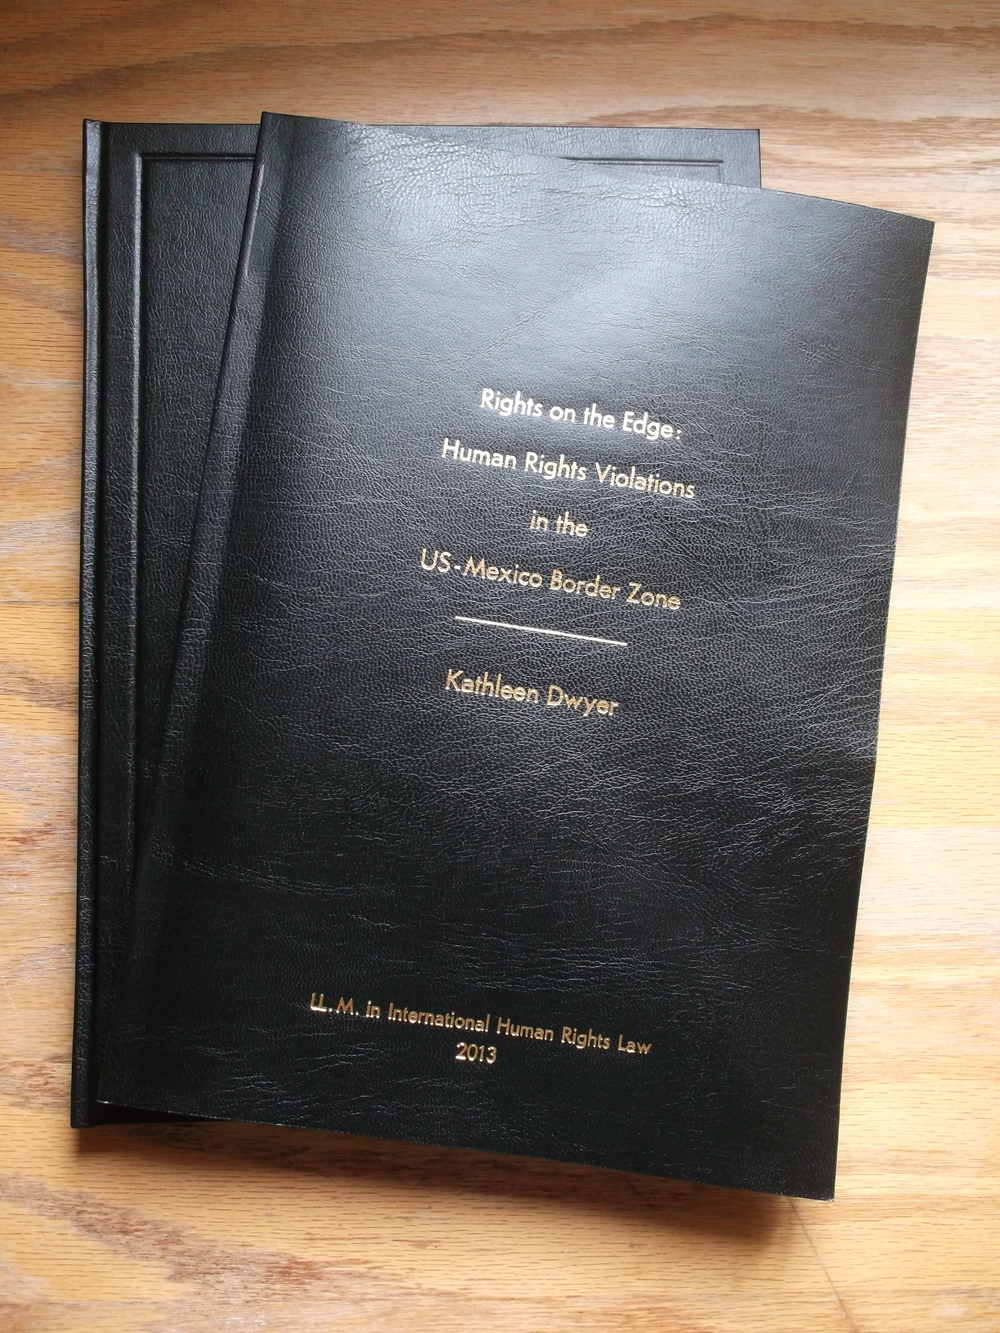 thesis binding sligo ireland Dcu faculties and centres: school of chemical sciences doras  phd thesis, dublin city university  environ 2015, 8-10 apr 2015, sligo, ireland duffy,.